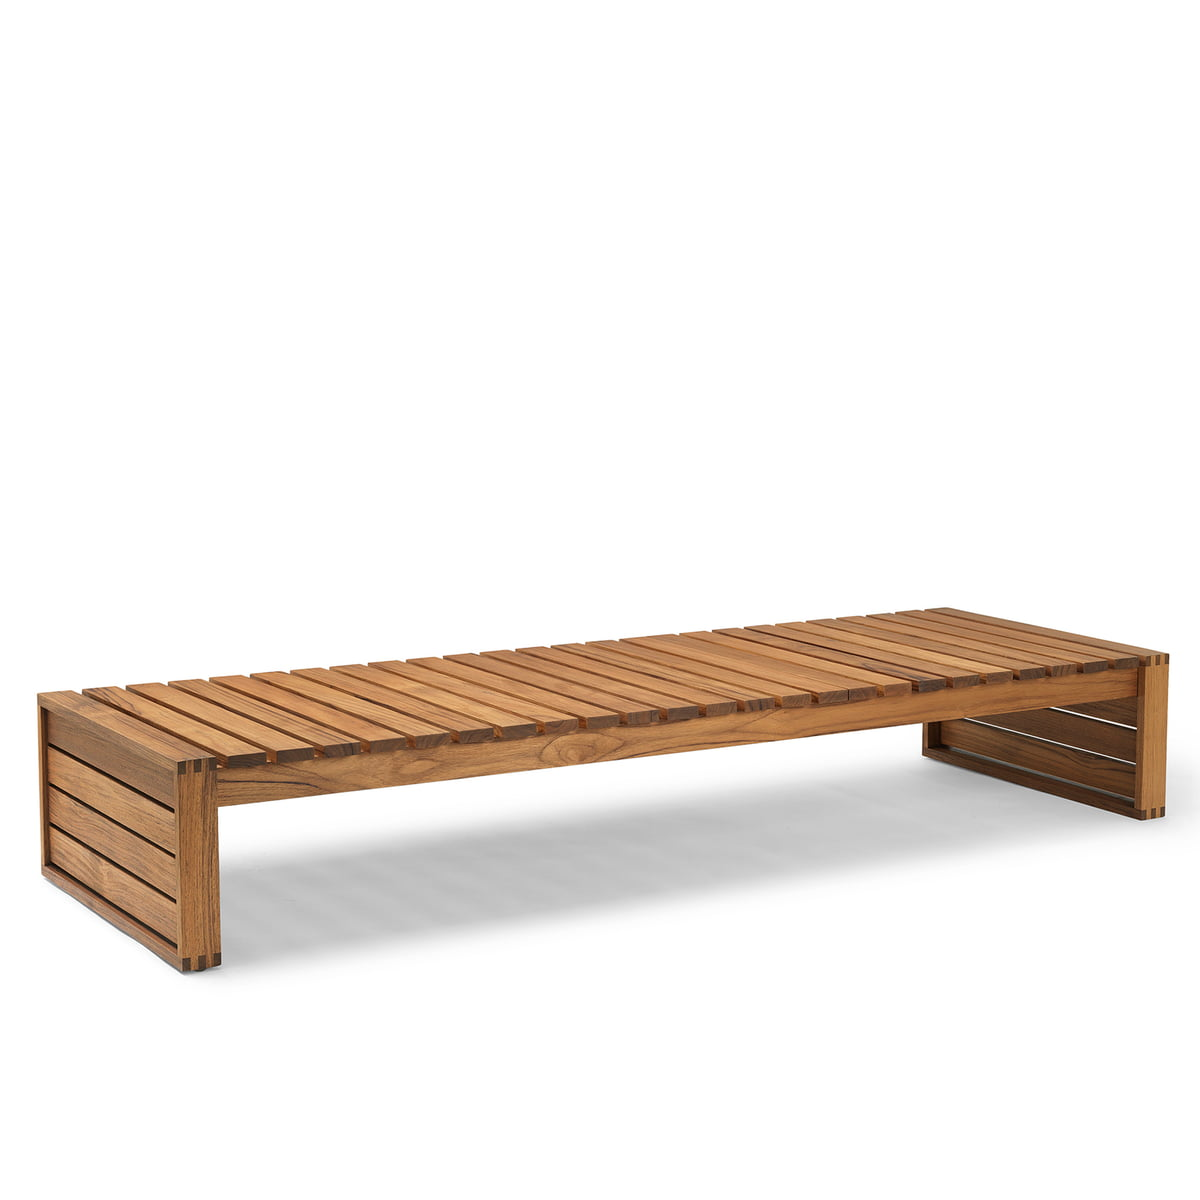 Bk14 sunlounger by carl hansen oiled in teak